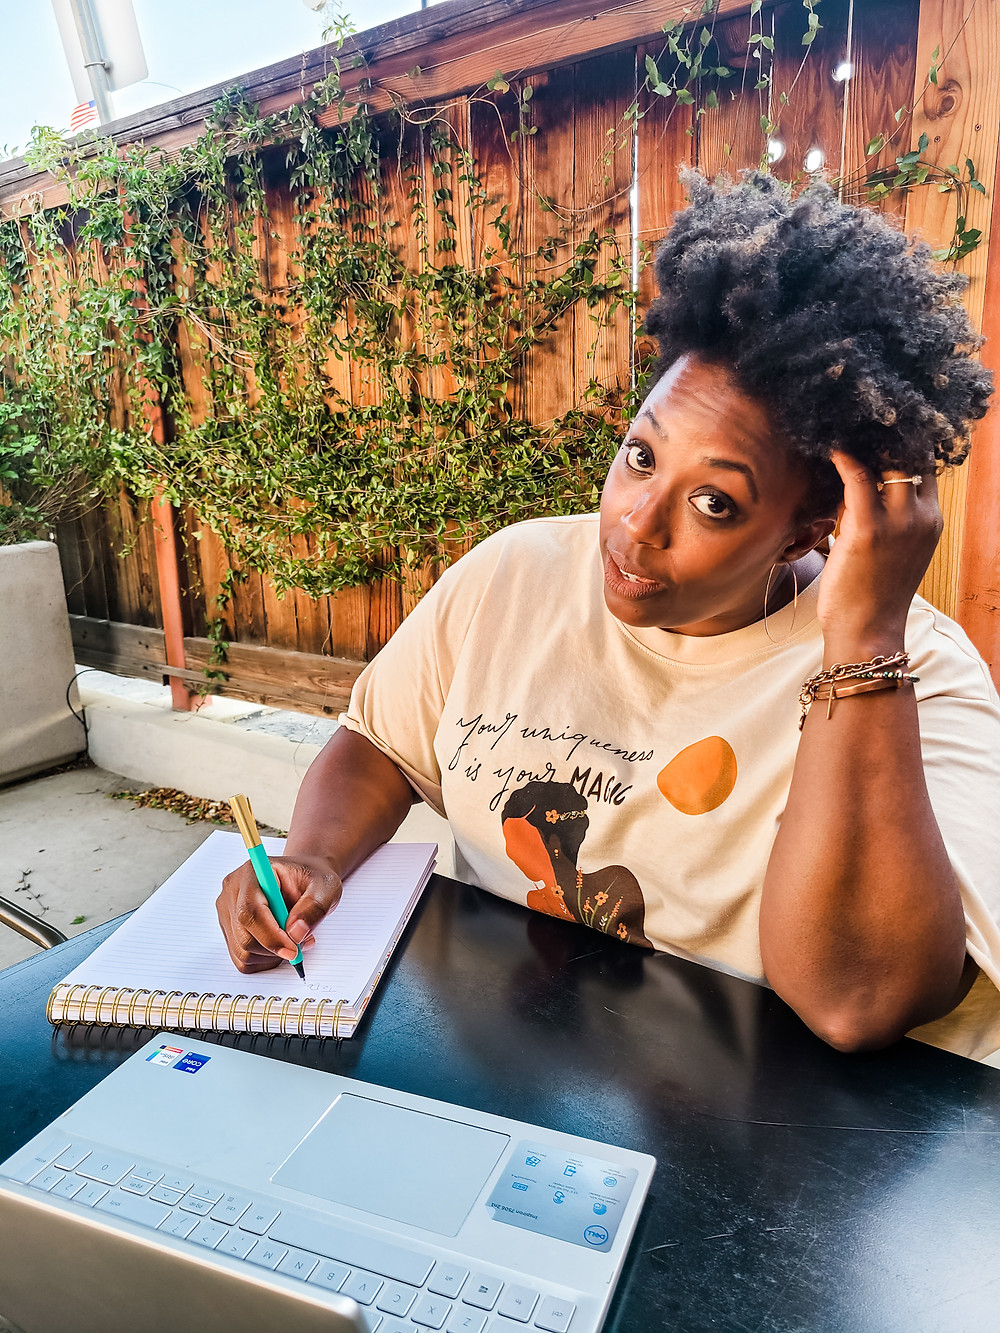 African American woman sitting outdoors at a table, writing on a spiral notebook with a teal colored pen in right hand, adn an open laptop in front. Left hand is bent up and fingers inside of her curly tapered haircut. Ivory colored shirt with an African American woman on the front, and illegible black writing. Head tilted up towards camera, making direct eye contact. Wooden fence with green vines behind her. Shanell Tyus. Black Blogger.